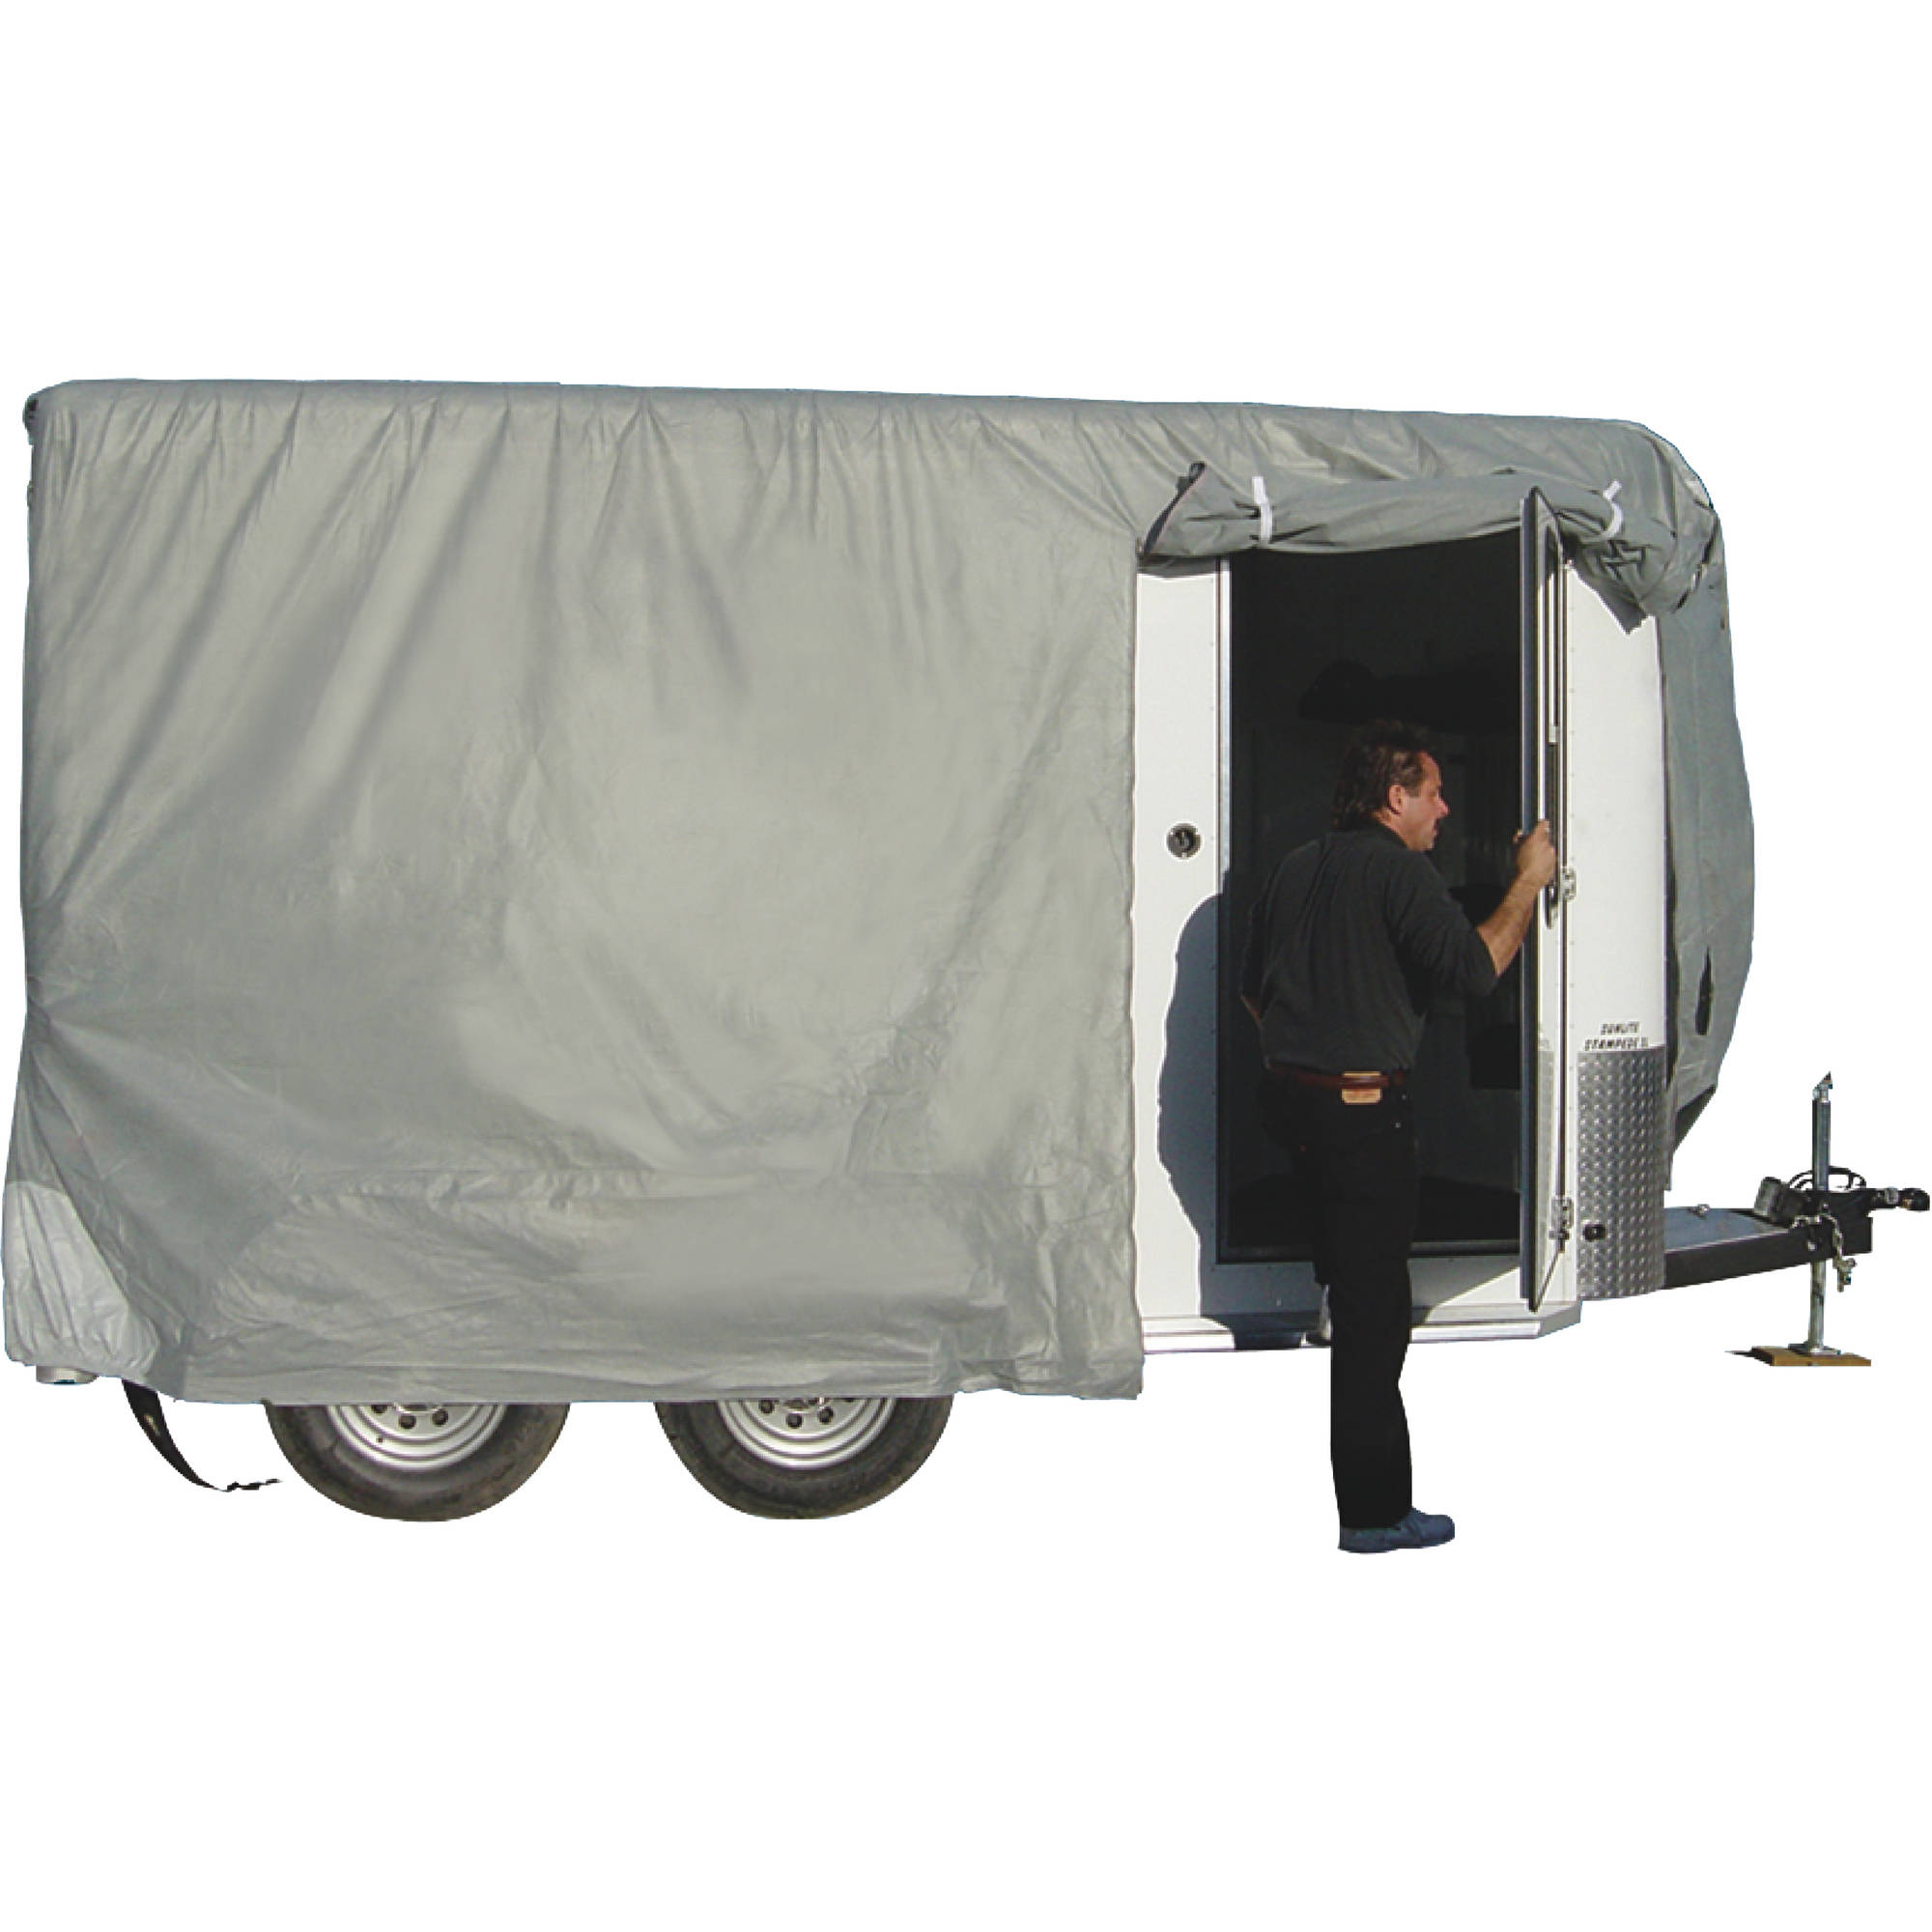 ADCO Bumper Pull Horse Trailer Cover, Grey SFS Aquashed Top/Grey Polypropylene Sides